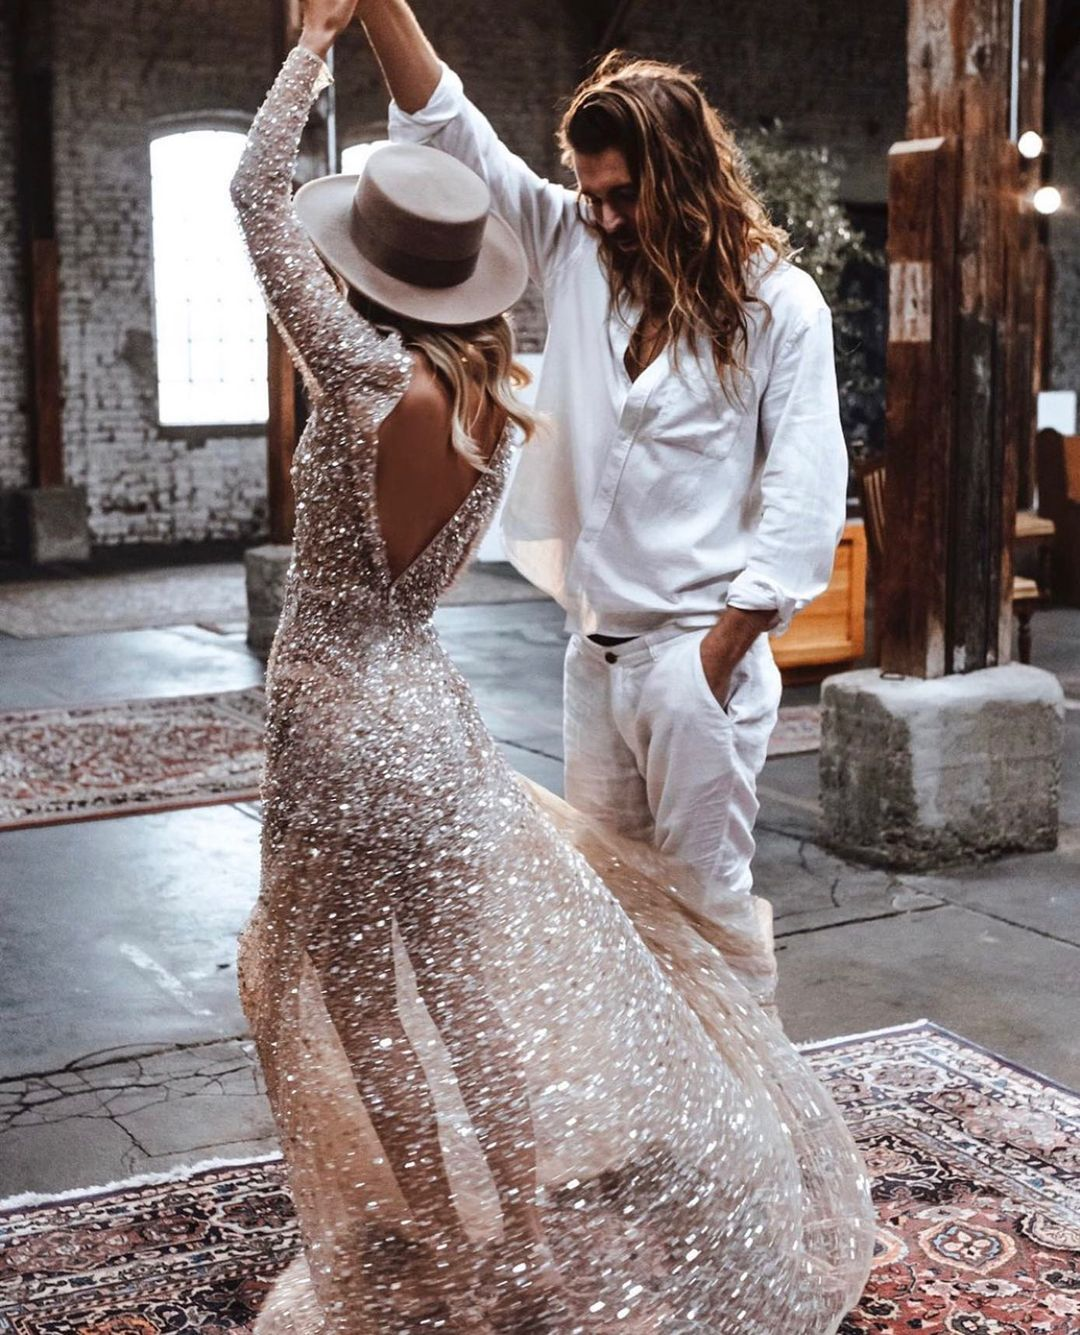 How-to-Manage-First-Dance-Wedding-Jitters-Bridal-Musings-DJ-Malike-3 How To Manage Wedding First Dance Jitters